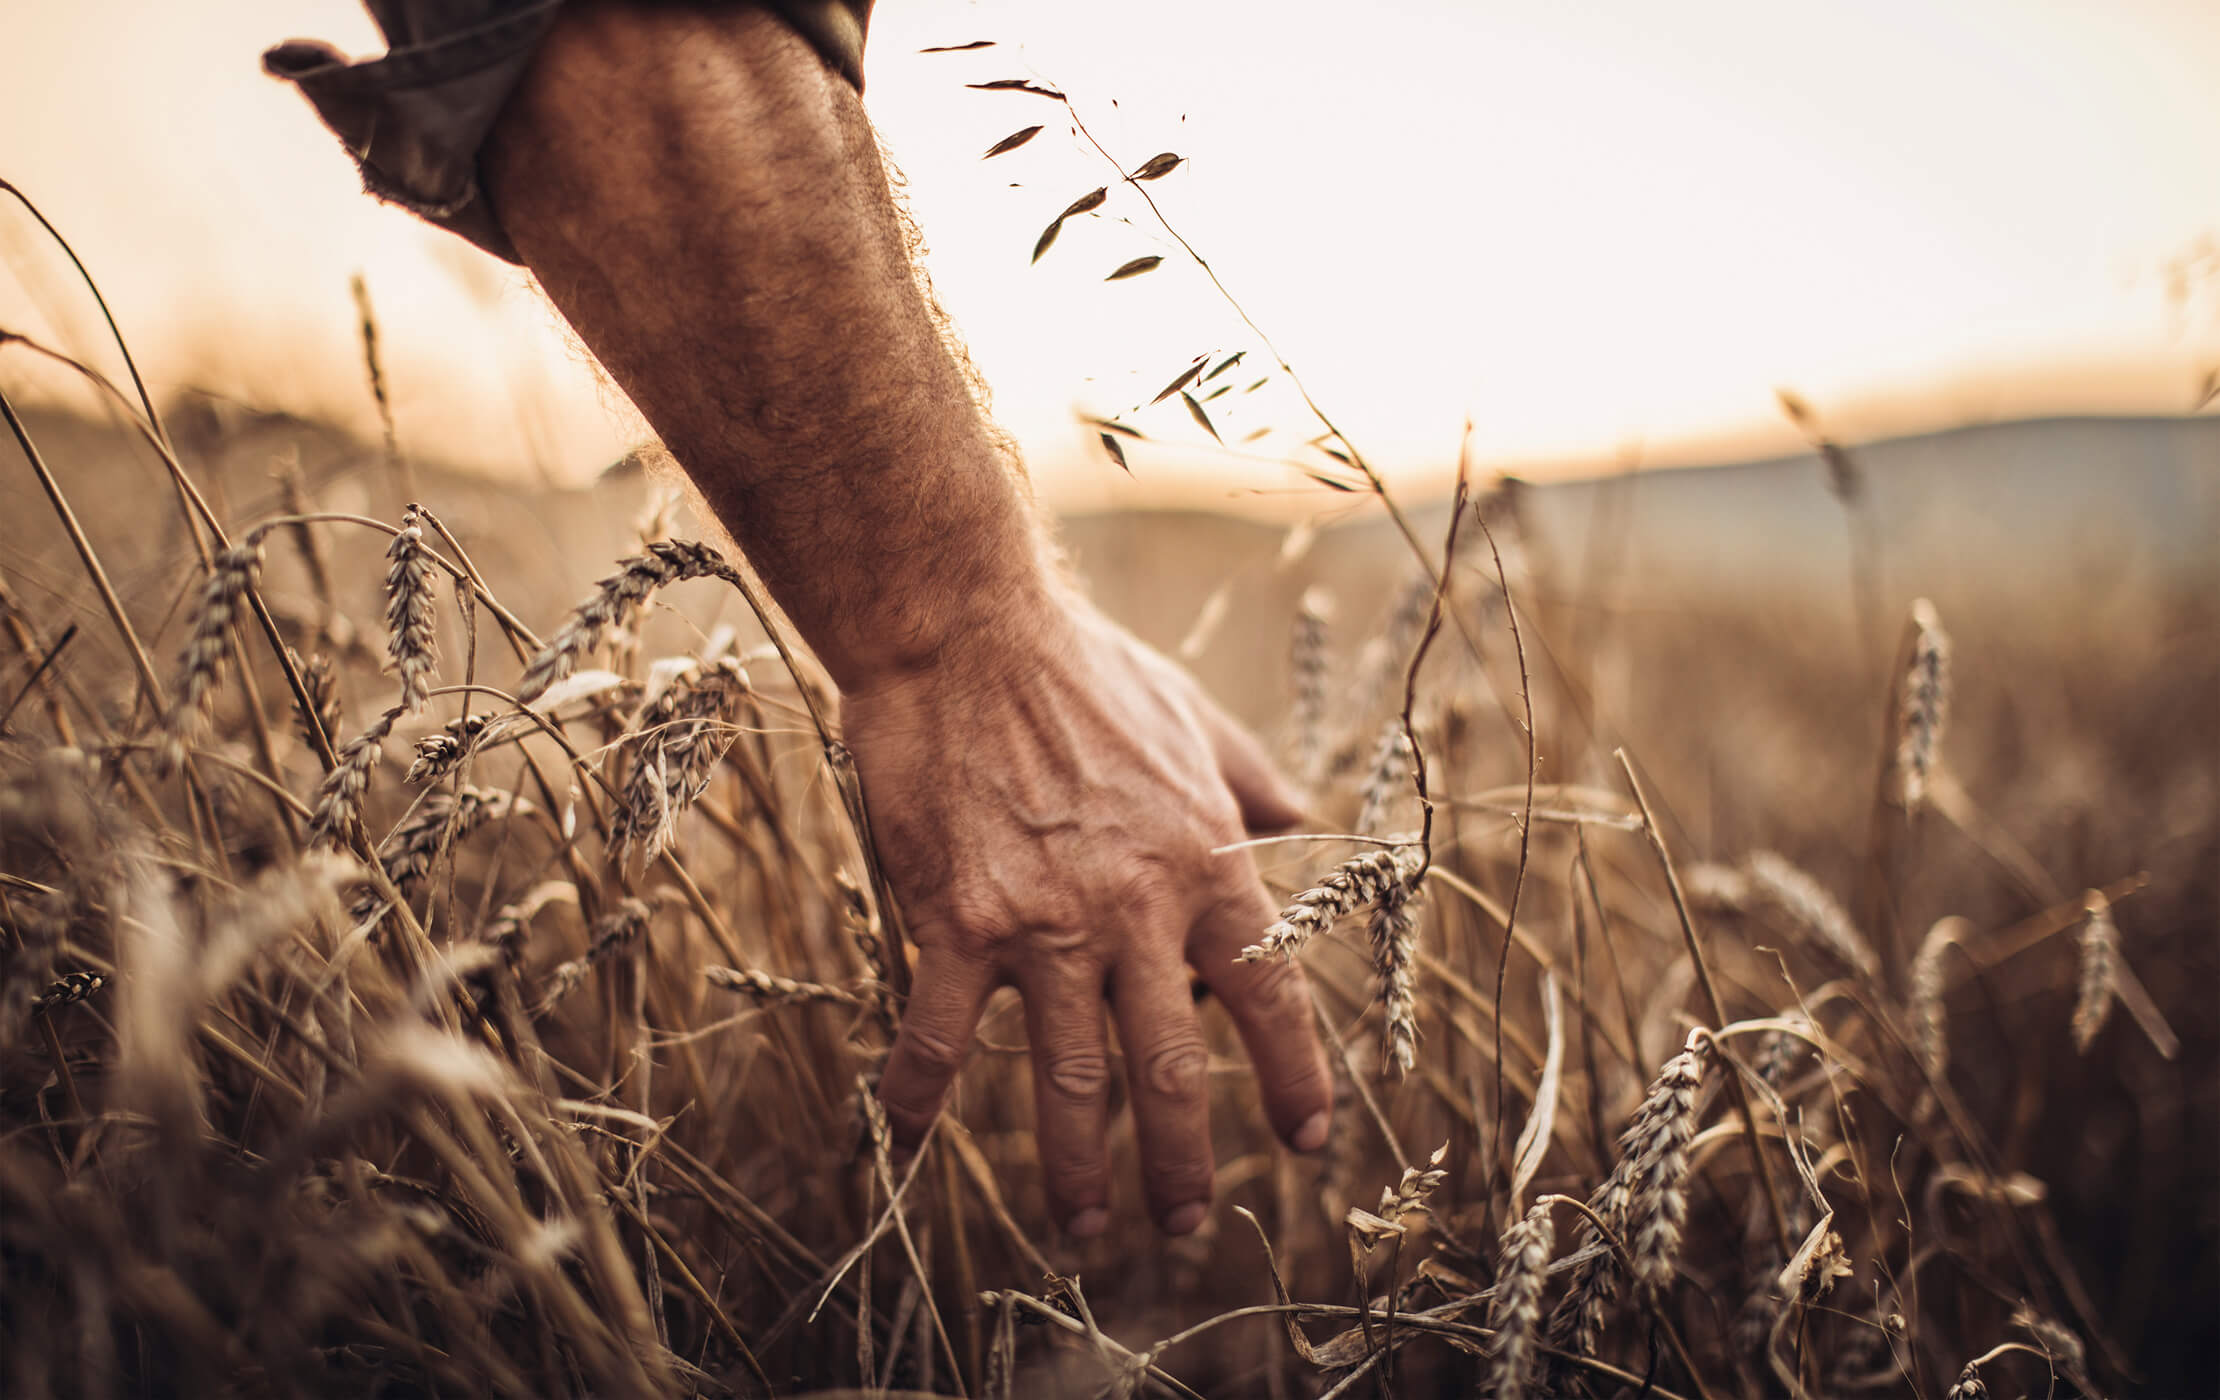 Close-up shot of male farmer, running his hands through a field of corn on a warm summer evening